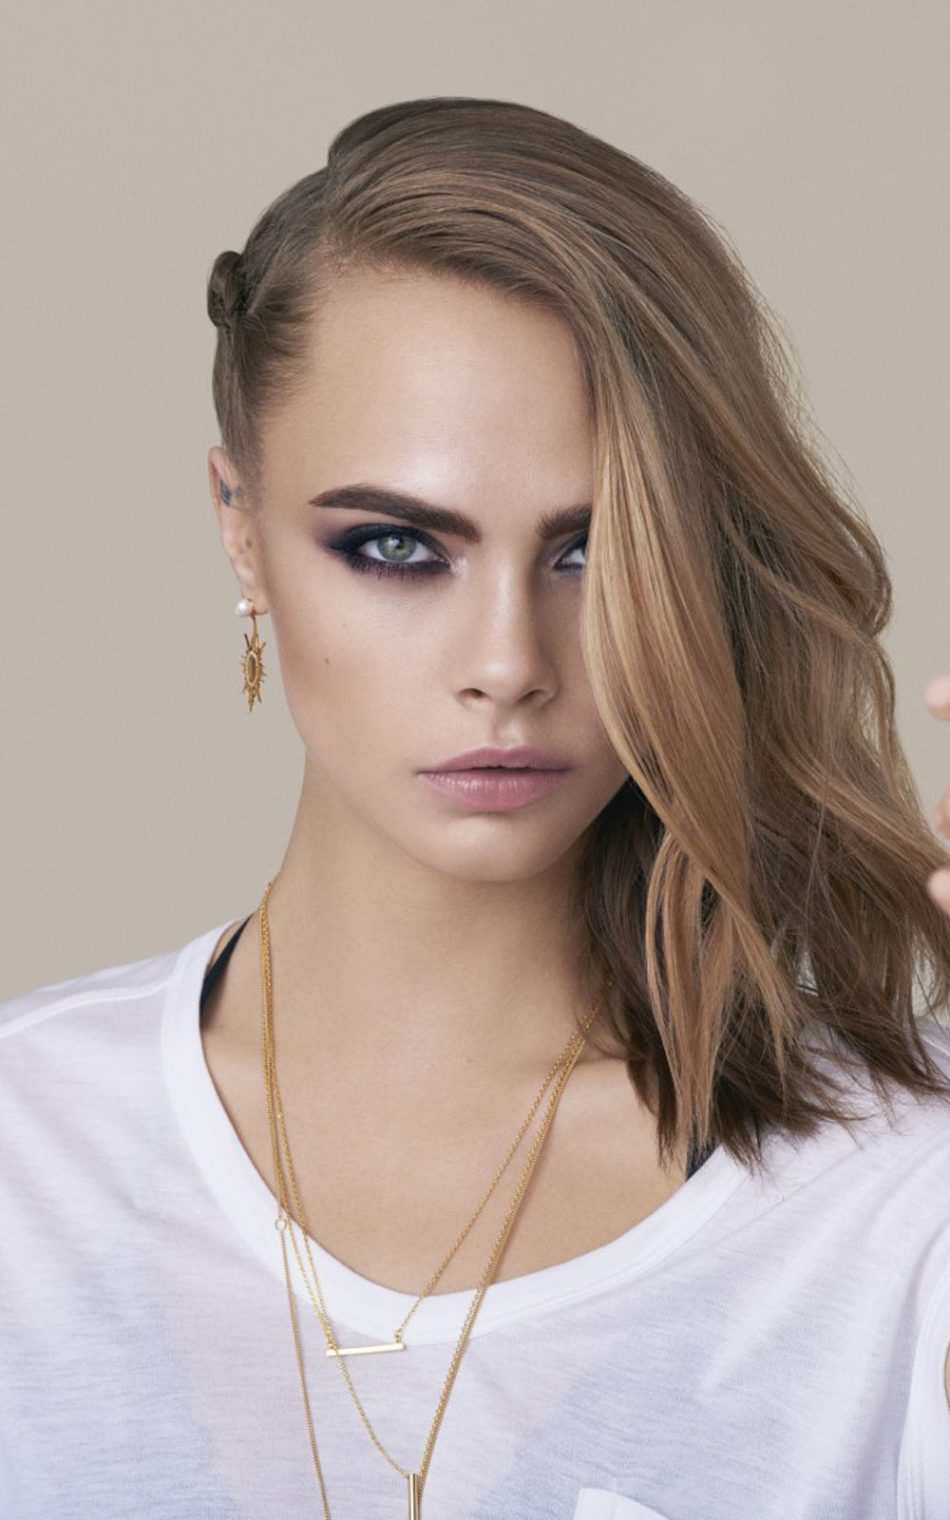 Cara Delevingne Style Photoshoot 4k Ultra Hd Mobile Wallpaper